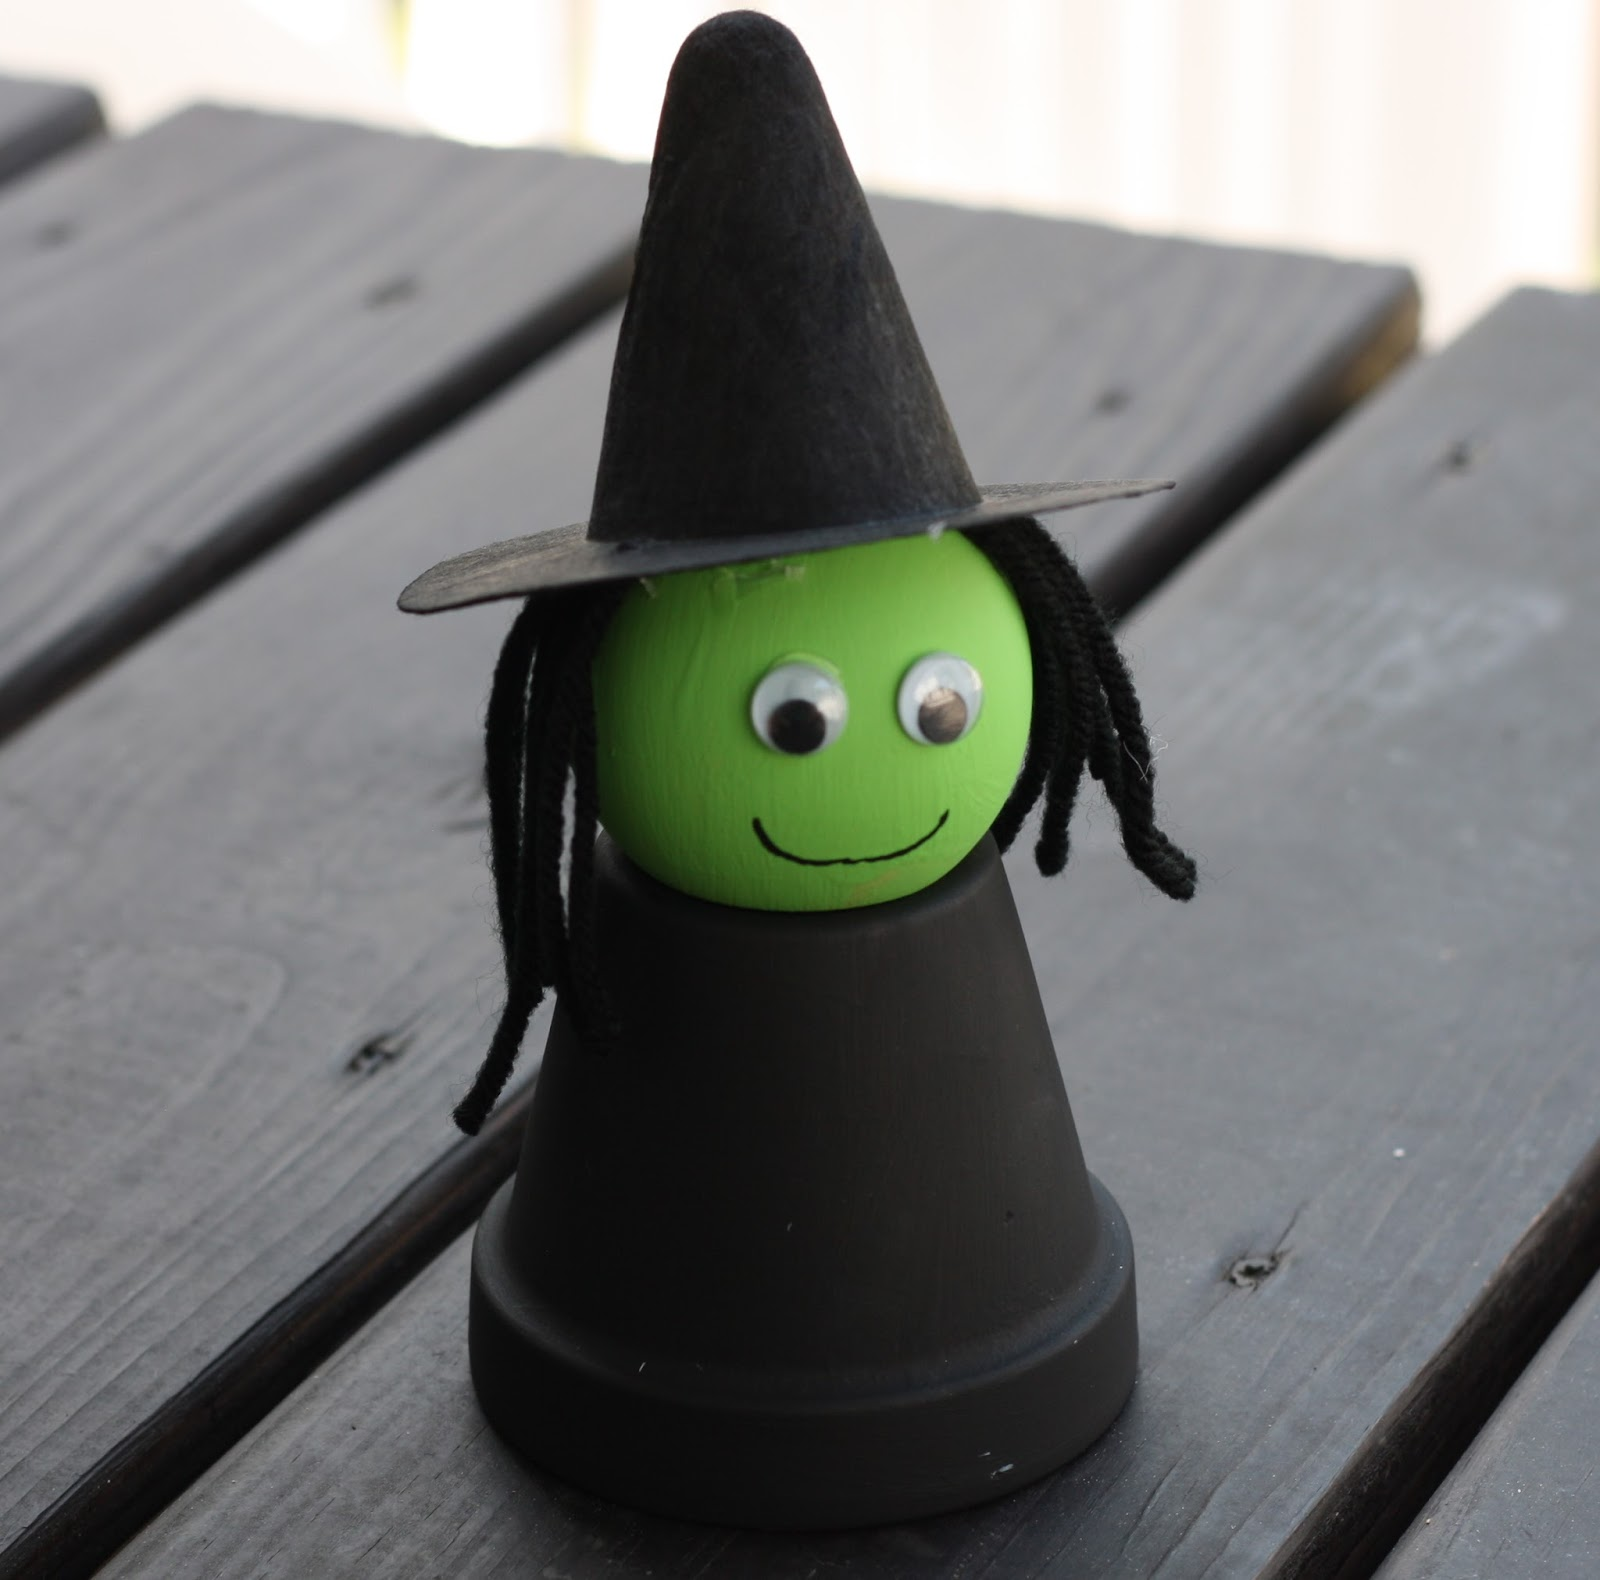 Halloween Crafts And Decorations: 3 Halloween Projects For Kids